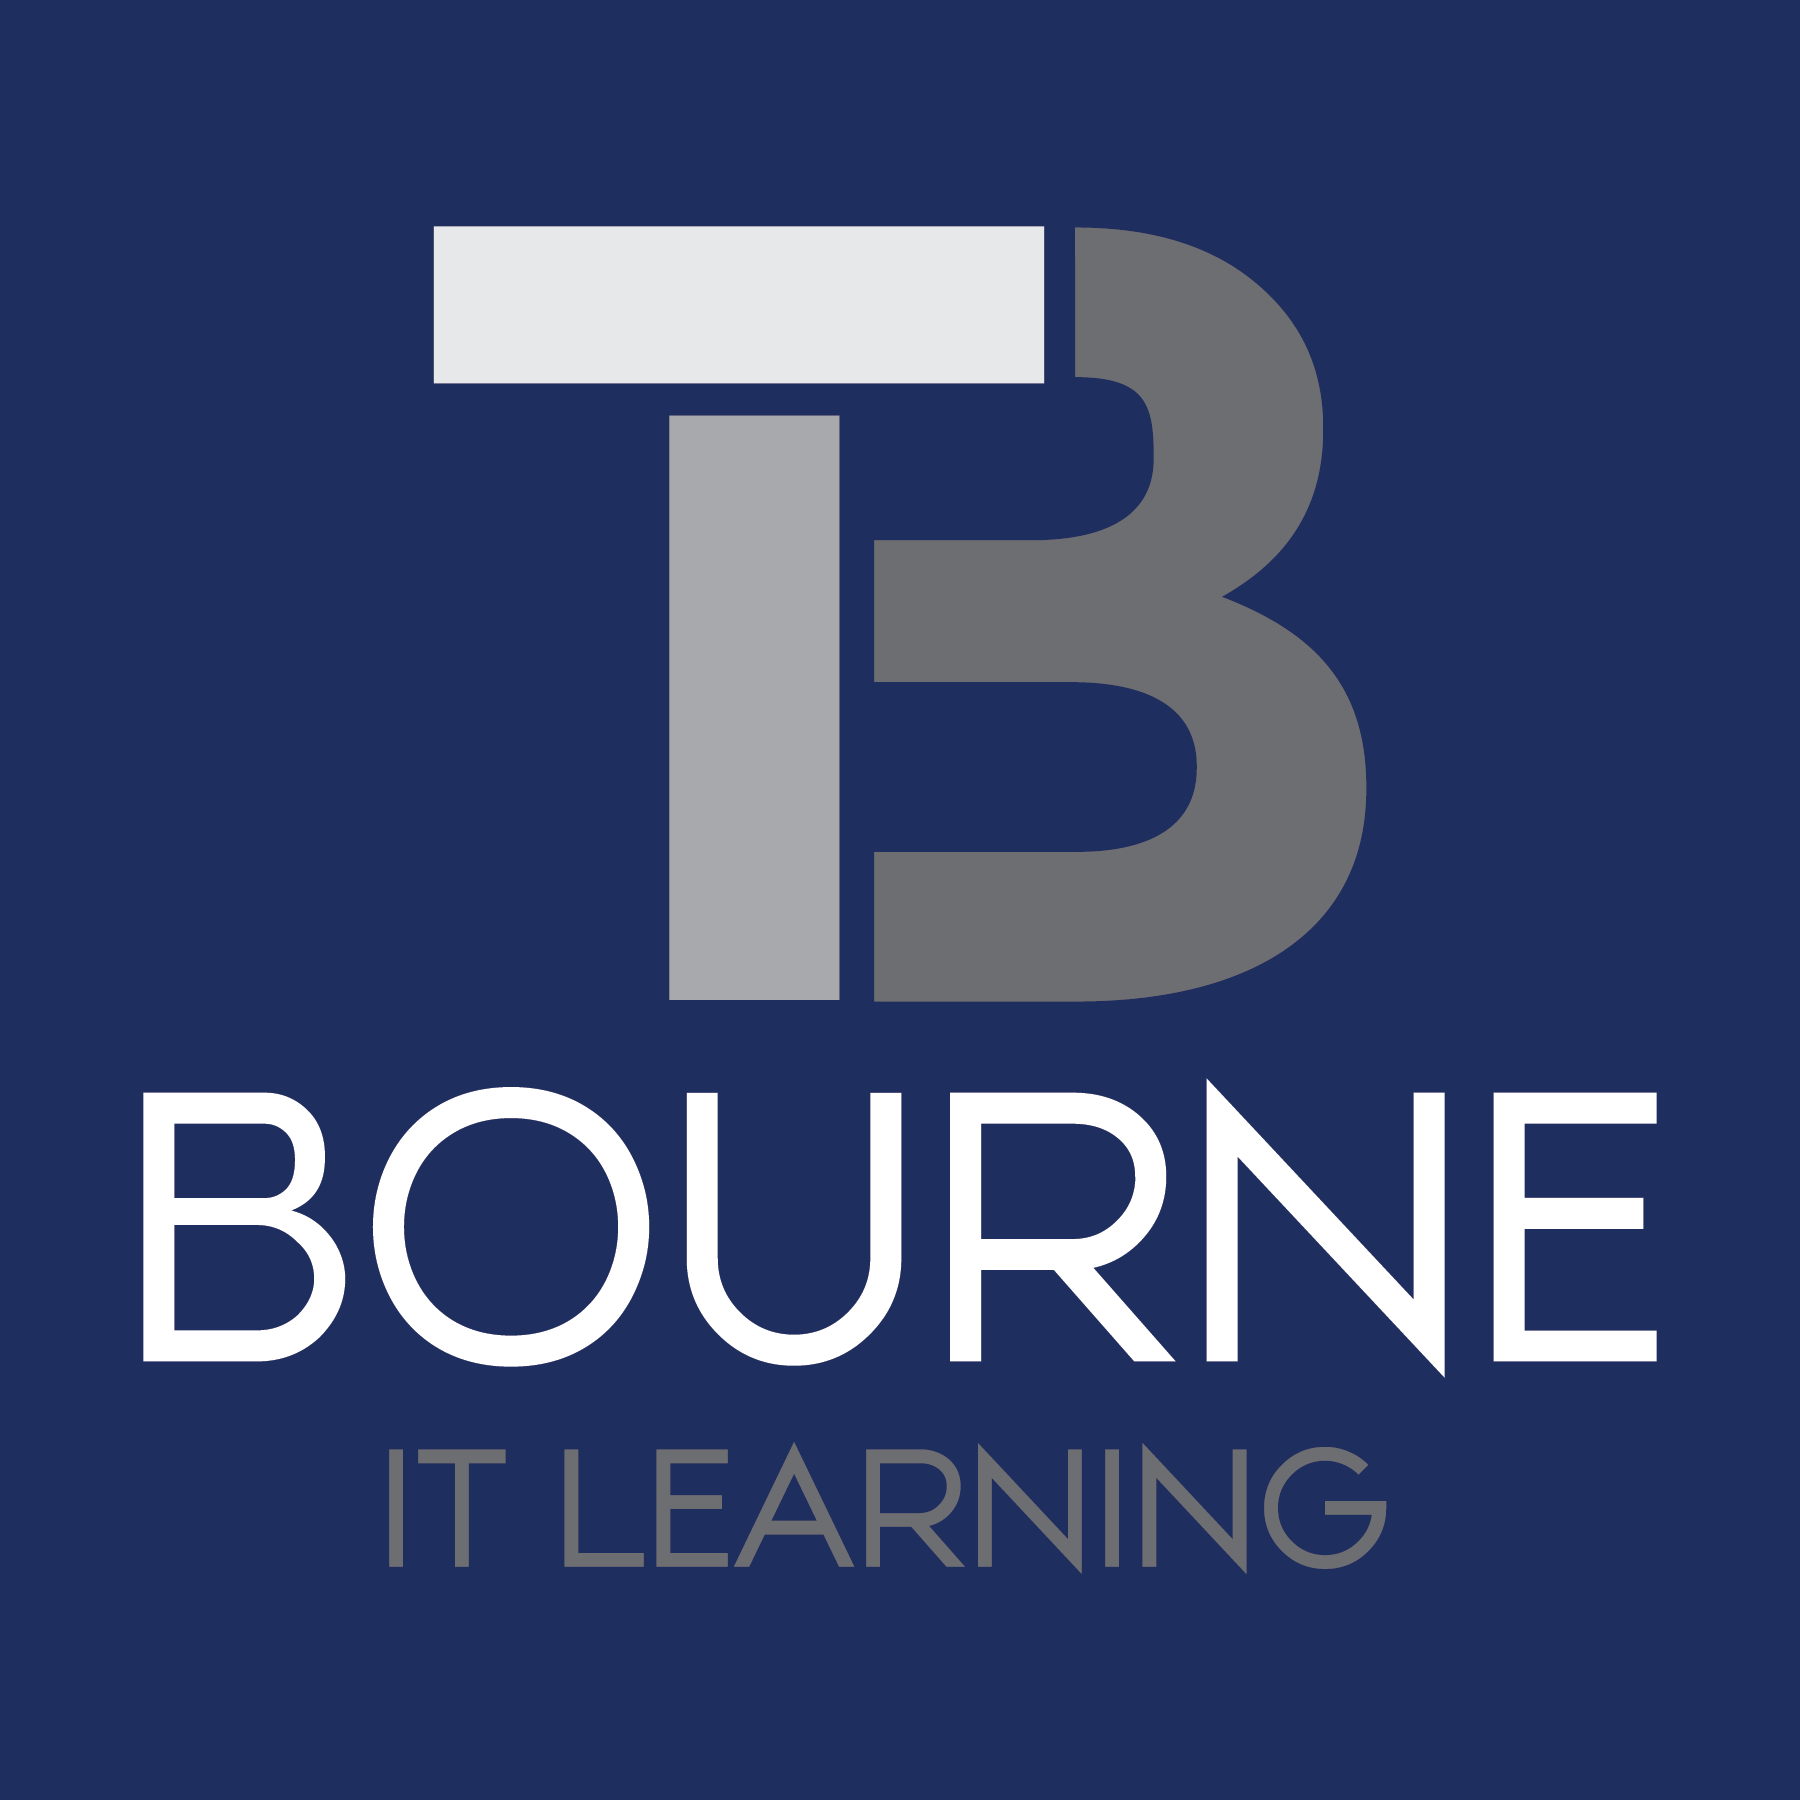 Bourne IT E-Learning